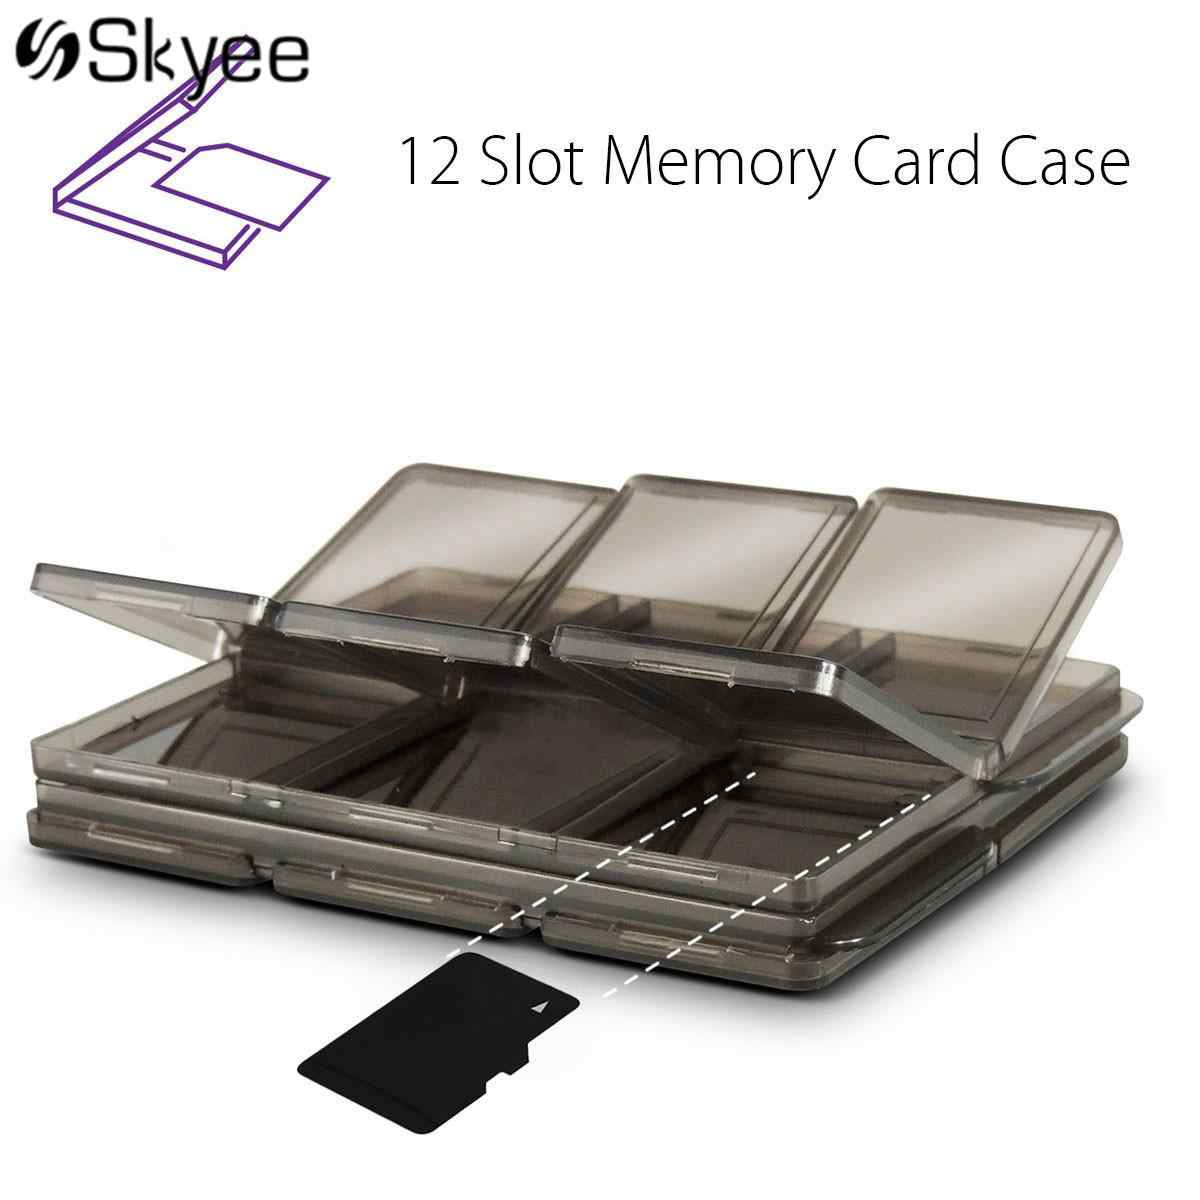 S SKYEE Foldable Coffee Memory Cards Case SIM/Micro SD/TF/XD Cards Storage Case Box Holder 12 Slots 2-Layers Design